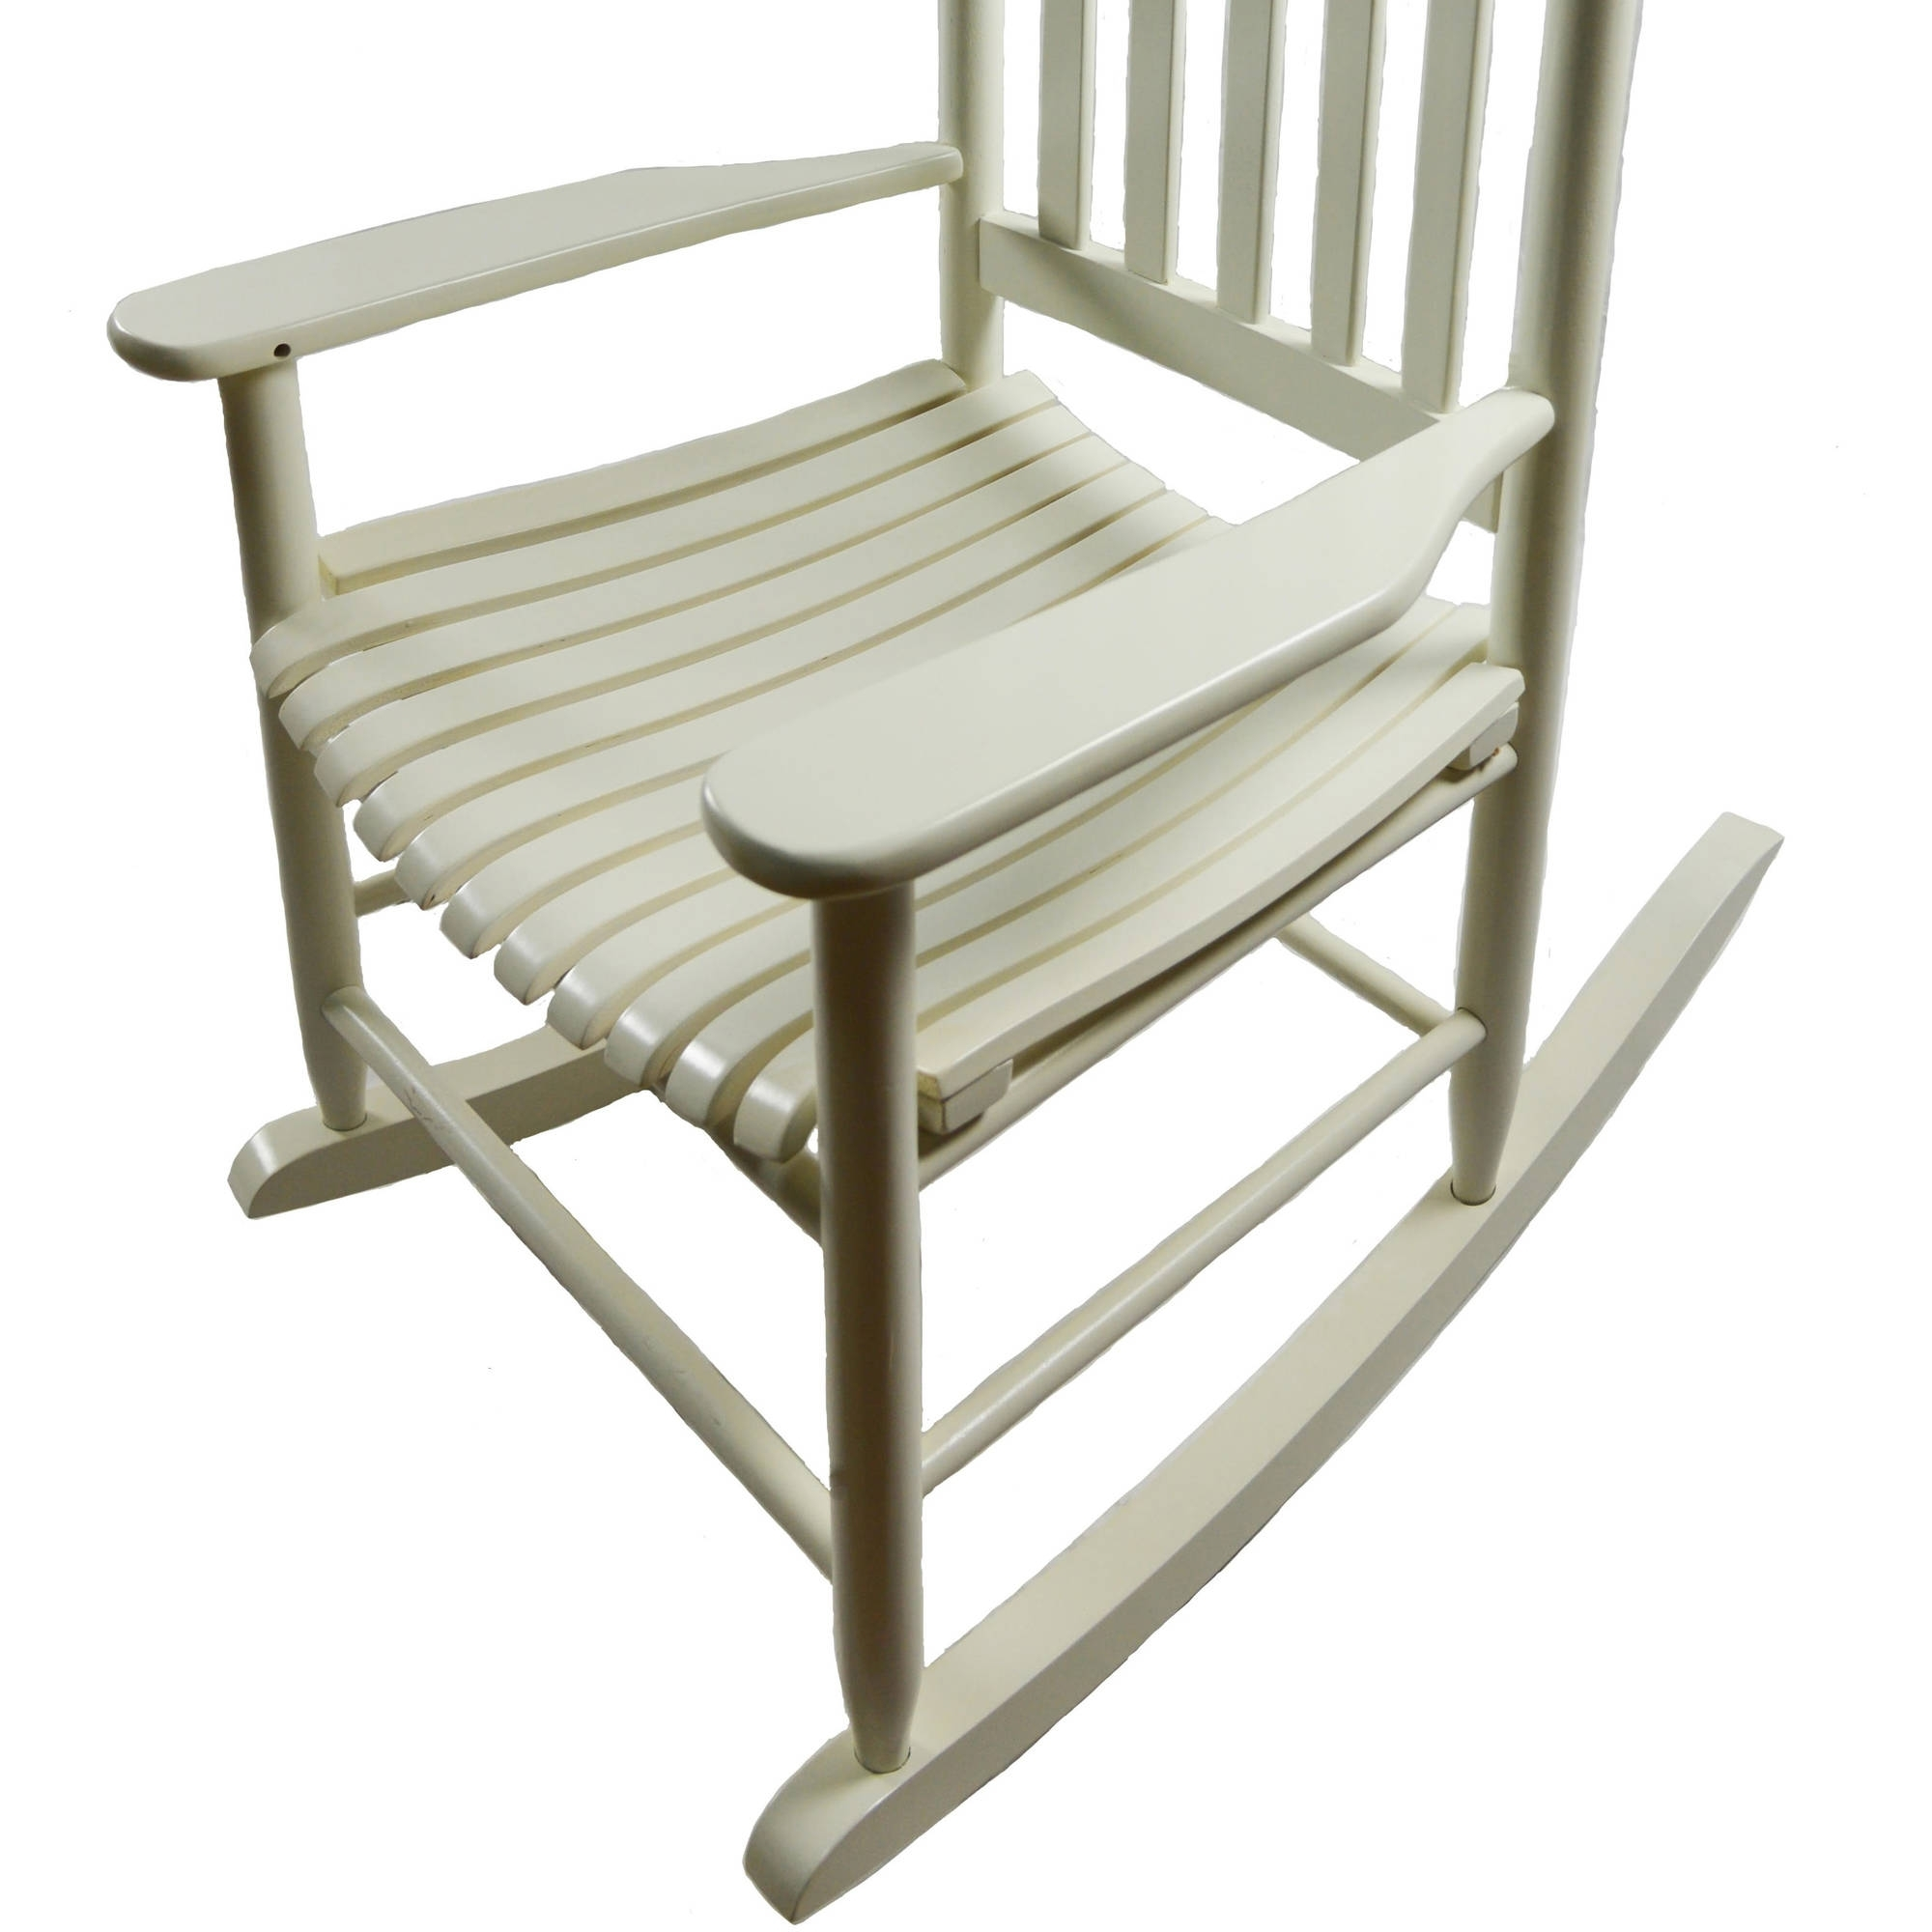 Mainstays Outdoor Wood Rocking Chair – Walmart Pertaining To Well Known Rocking Chairs At Walmart (View 12 of 20)